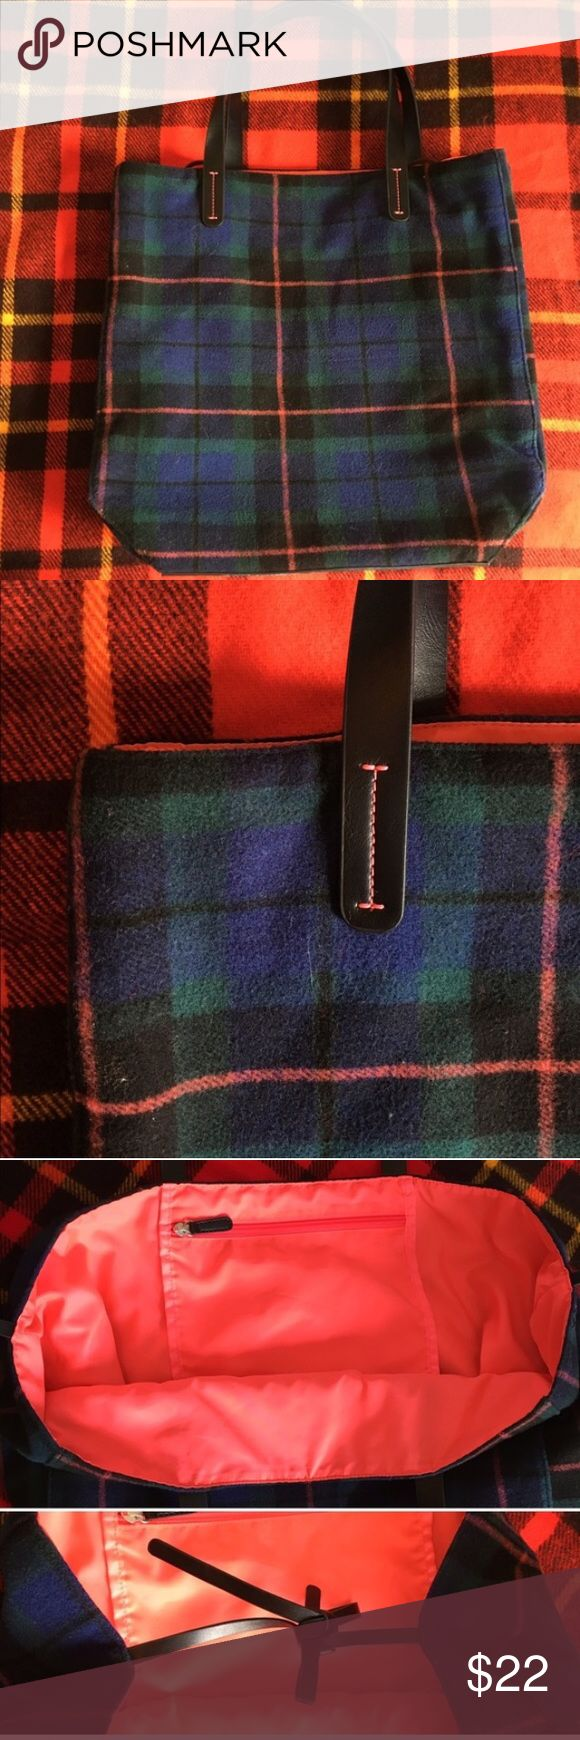 "GAP plaid tote, pink lining, leather handles EUC This colorful and functional GAP tote is perfect as a commuter tote, school bag, or travel! Classic wool plaid exterior with black leather handles and contrast pink stitching. Bright pink lining with interior zip pocket. Leather ties across open top secure contents. Measures 15x15x7"". Handles 1"" thick, 7"" drop 💗 THANK YOU for viewing my closet! Please feel free to make an offer. GAP Bags Totes"